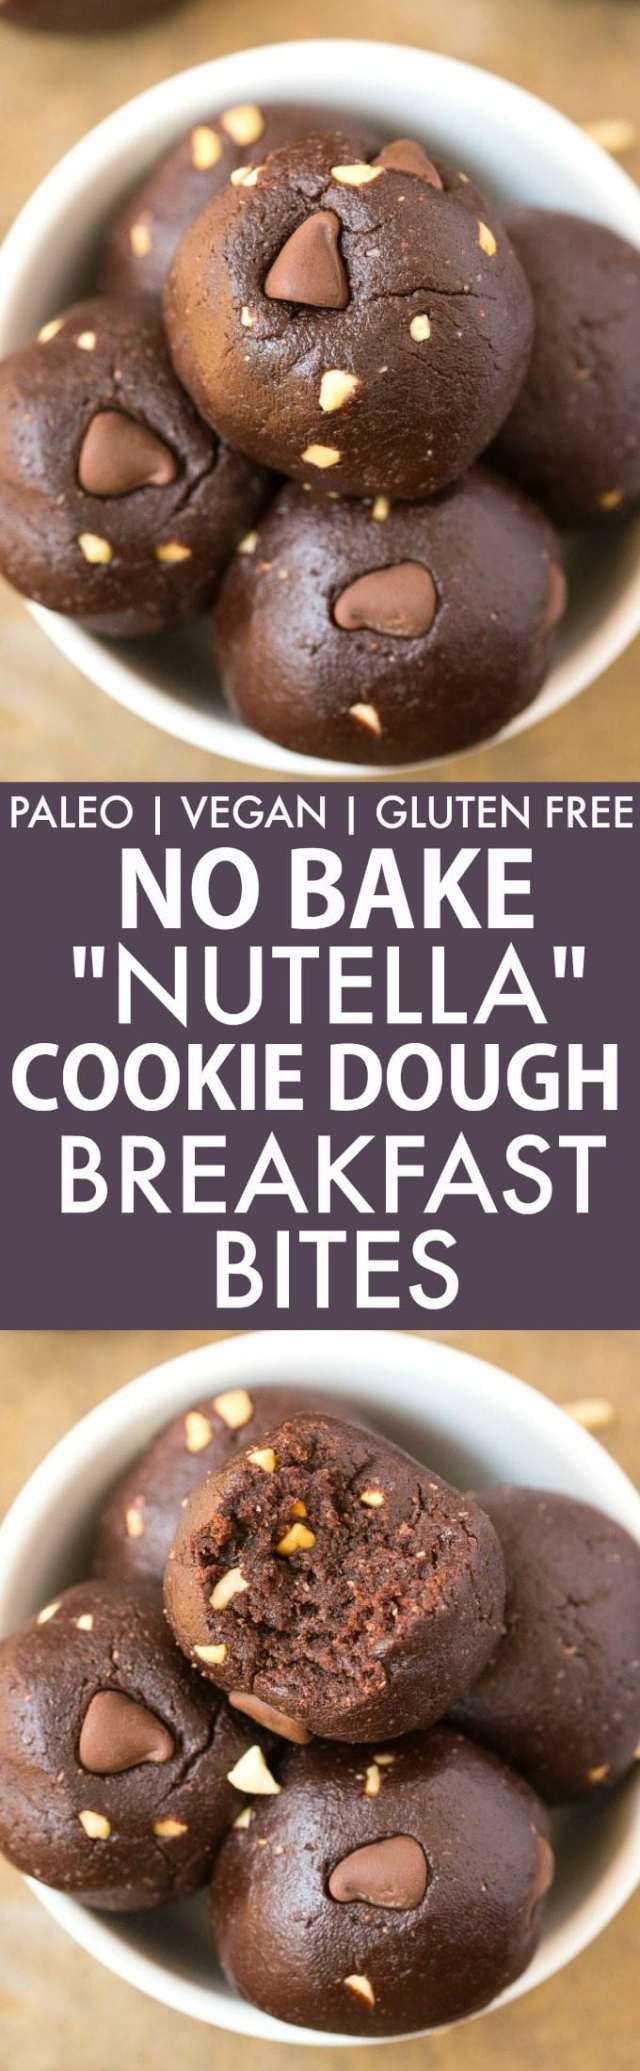 "Healthy No Bake ""Nutella"" Cookie Dough BREAKFAST Bites (GF, V, Paleo)- Quick, easy and delicious no bake bites which take minutes to whip up and like having a guilt-free, protein packed dessert for breakfast! Dairy free and refined sugar free! {vegan, gluten free, paleo recipe}- thebigmansworld.com"